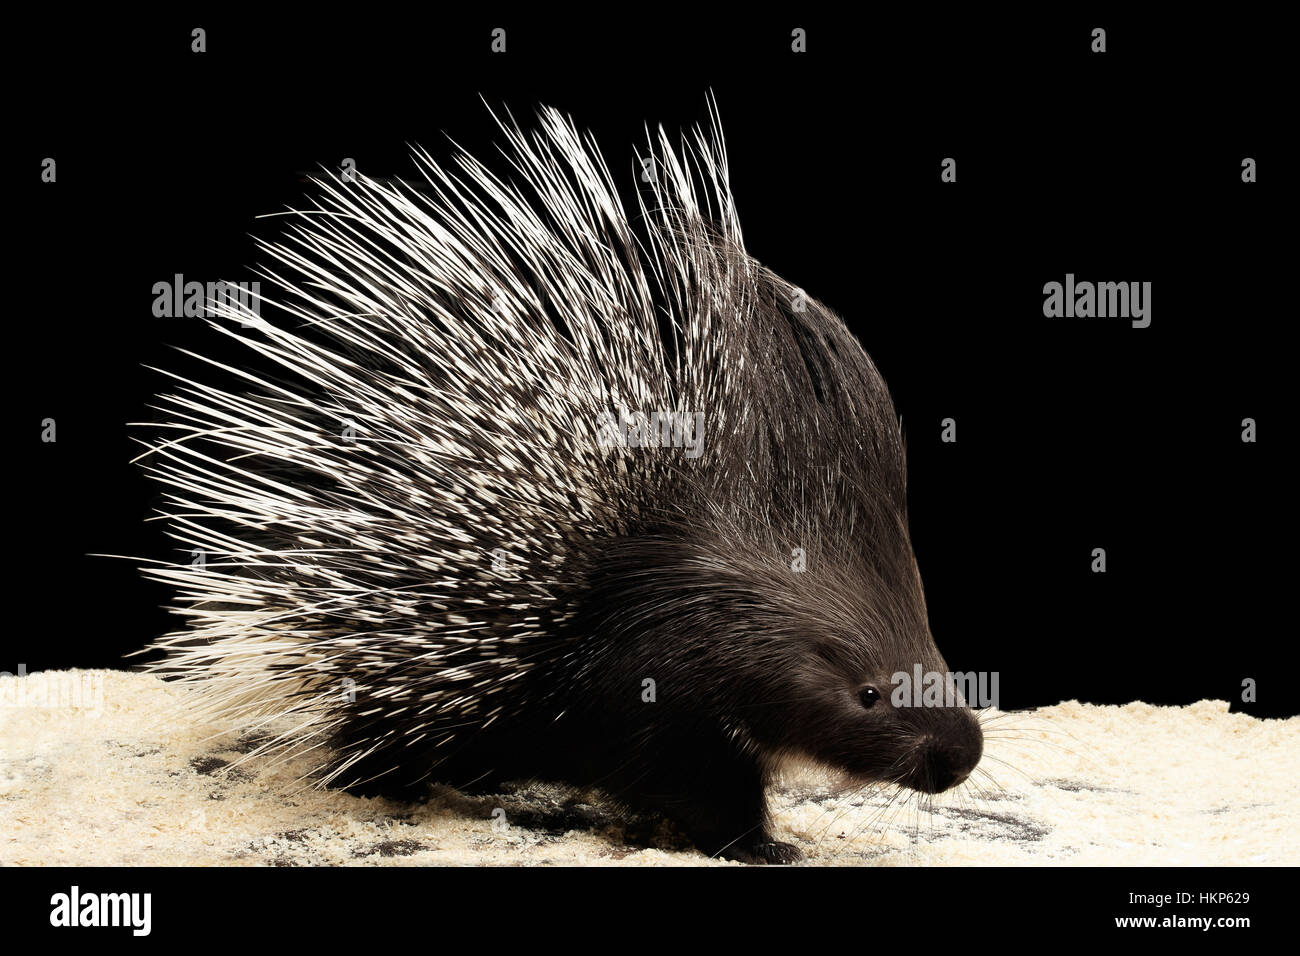 Porcupine isolated on black background - Stock Image